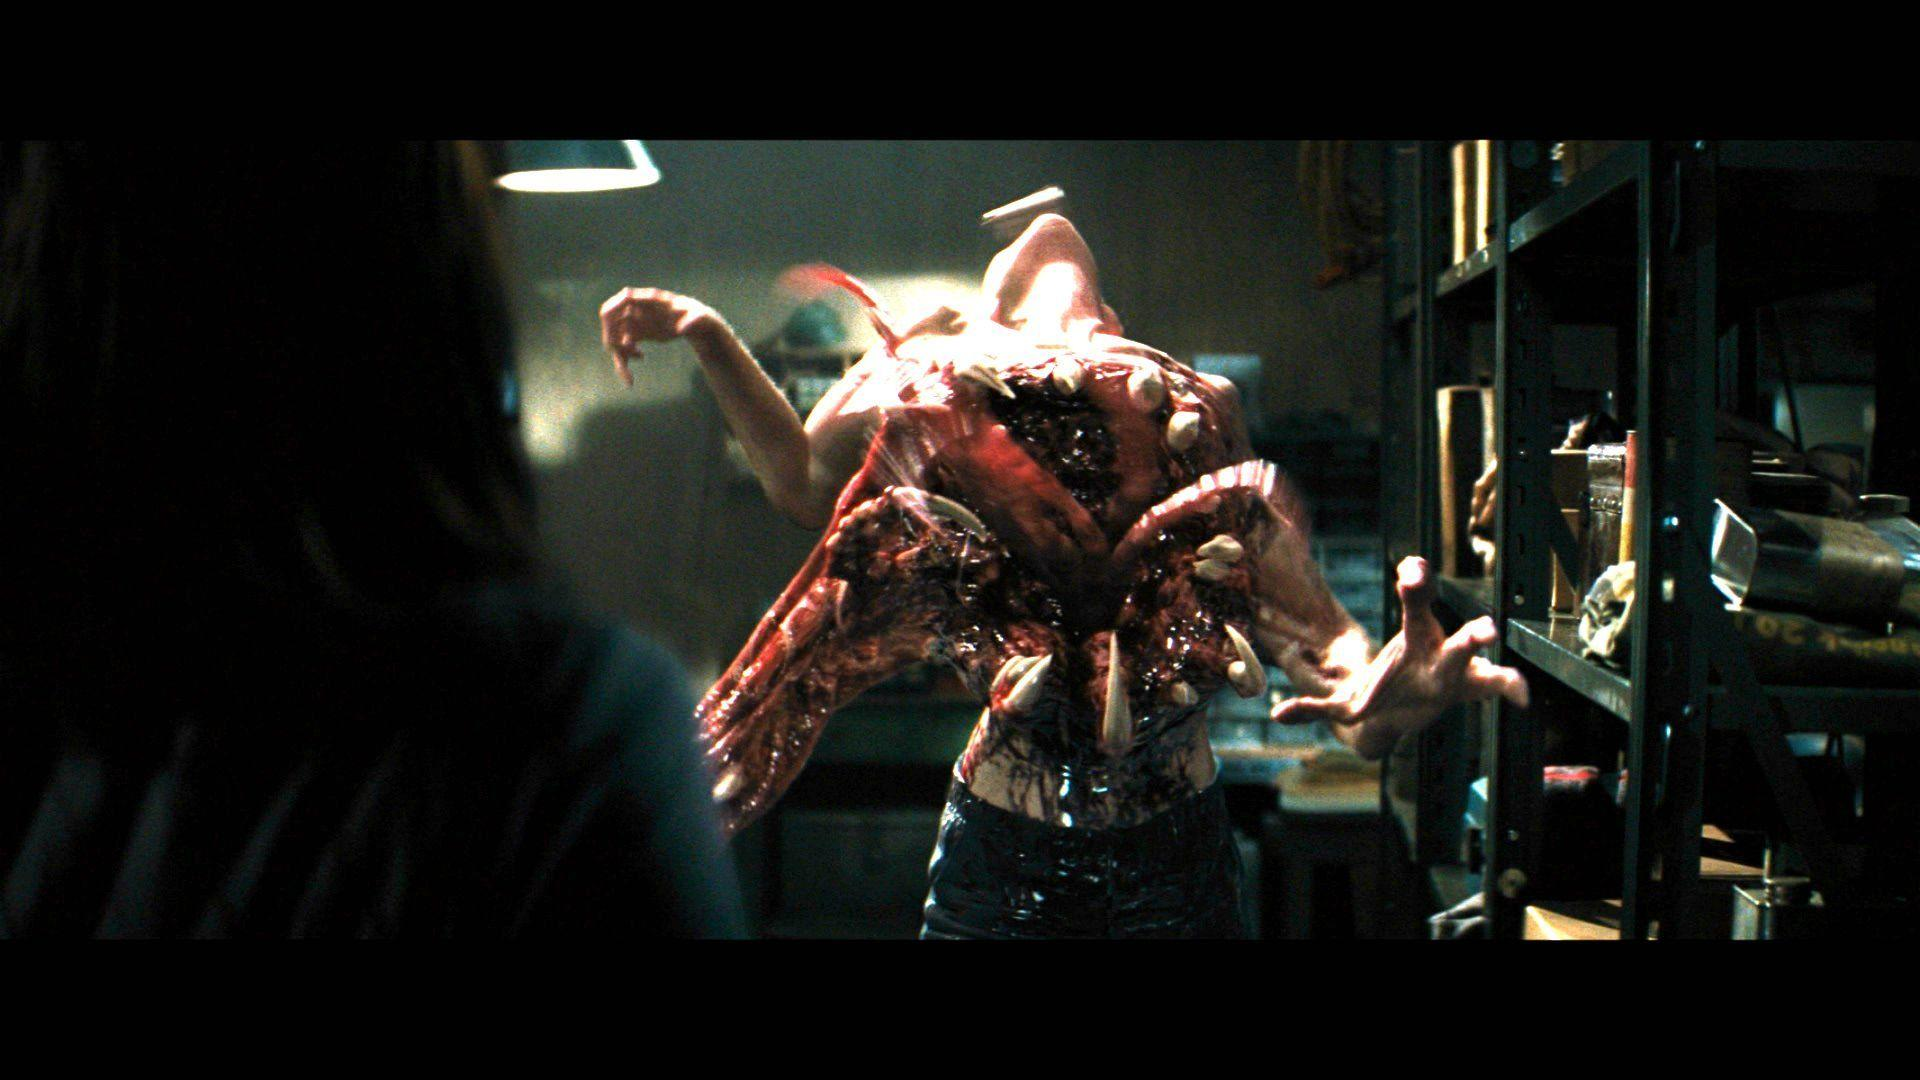 THE THING horror mystery thriller sci-fi dark monster alien g ...